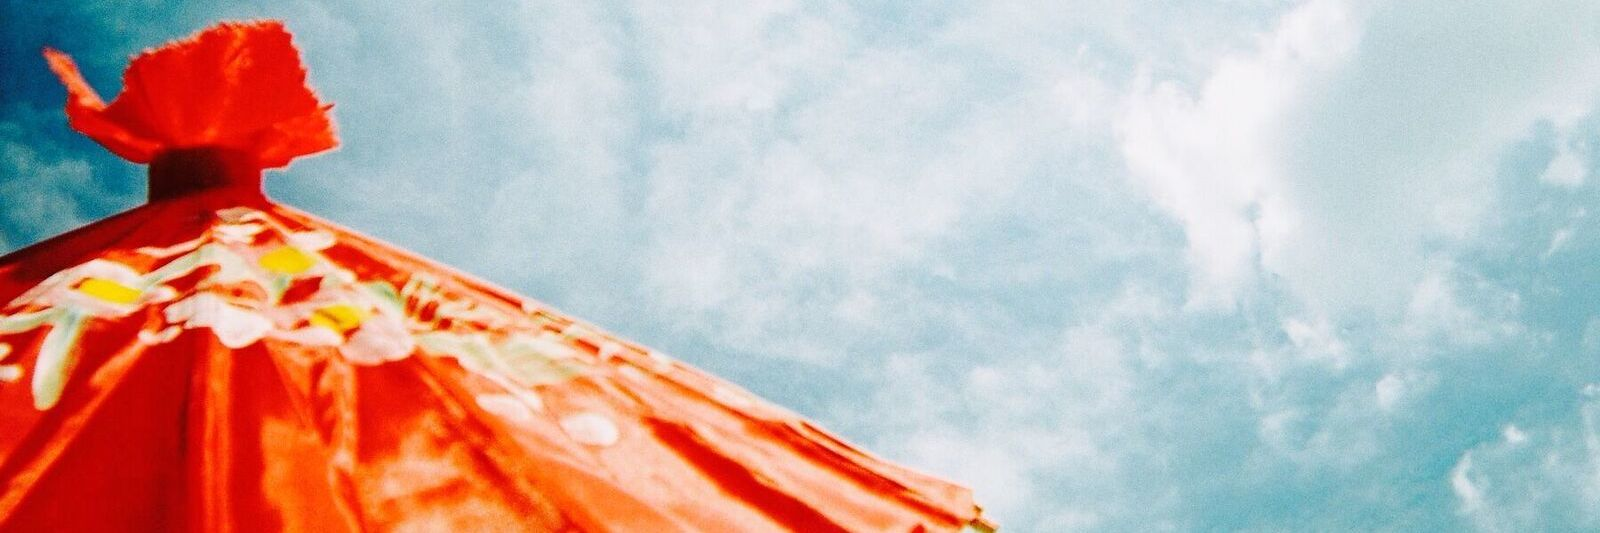 orange umbrella against a blue sky